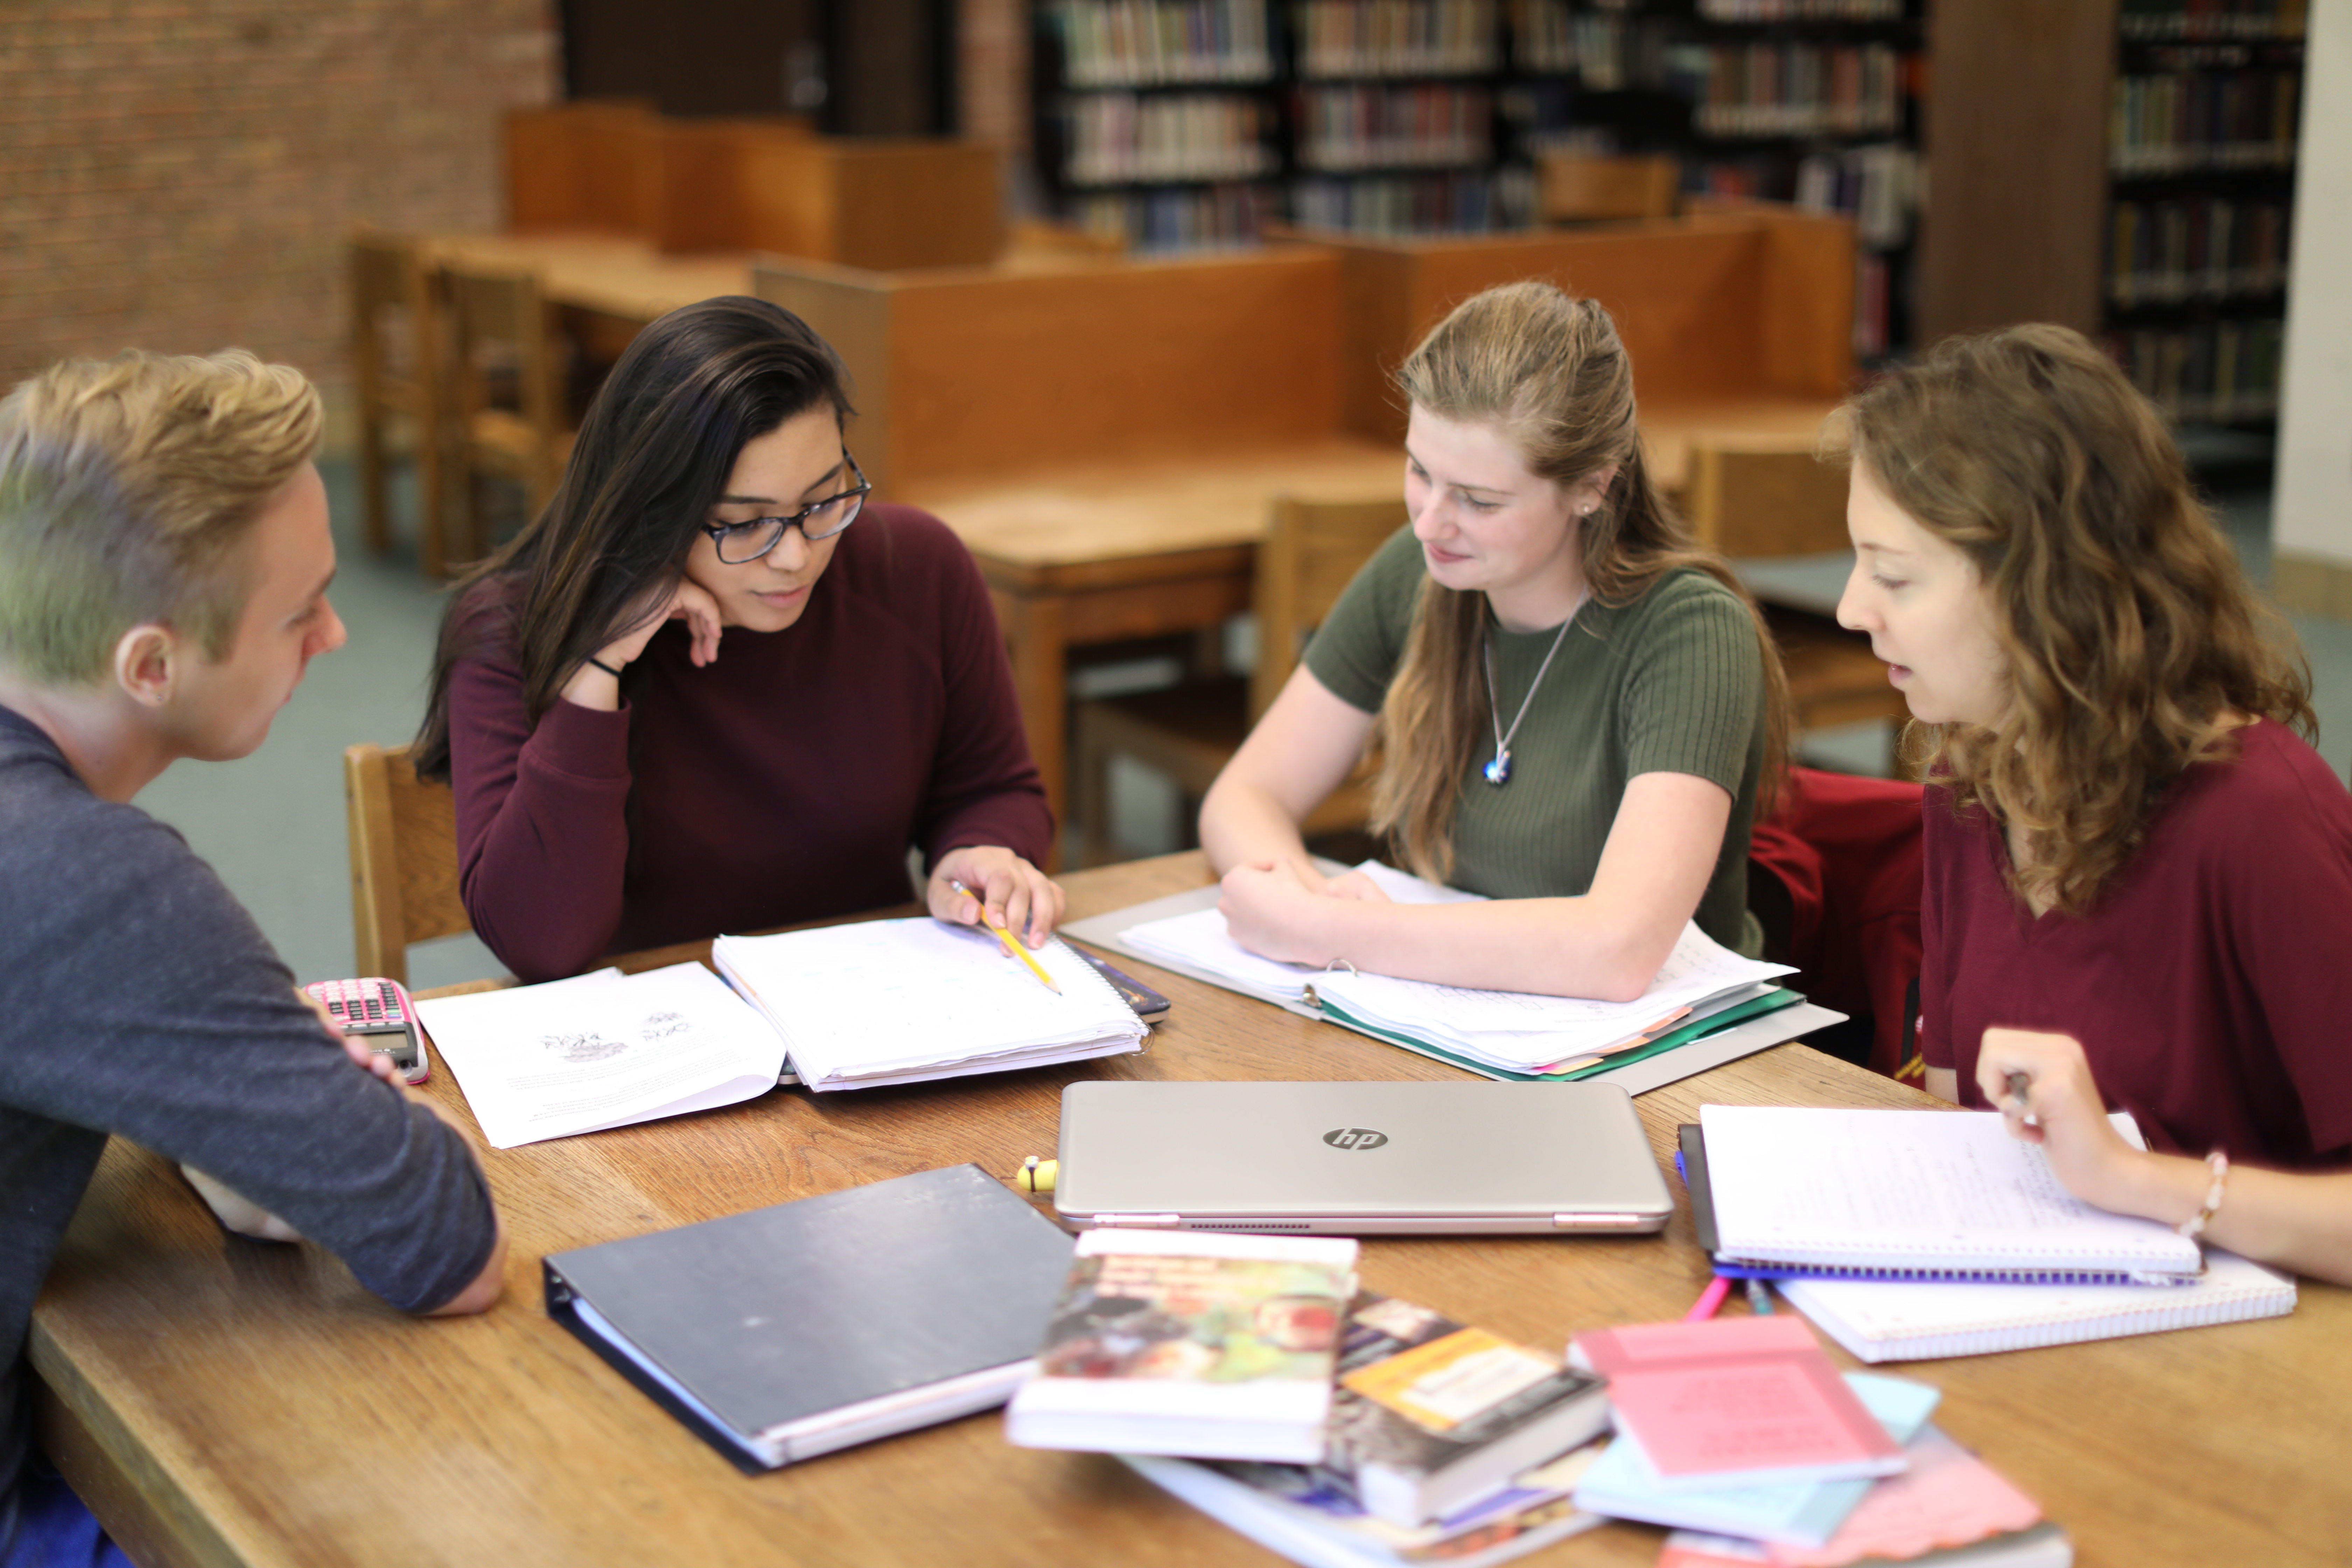 Four students in a tutoring session